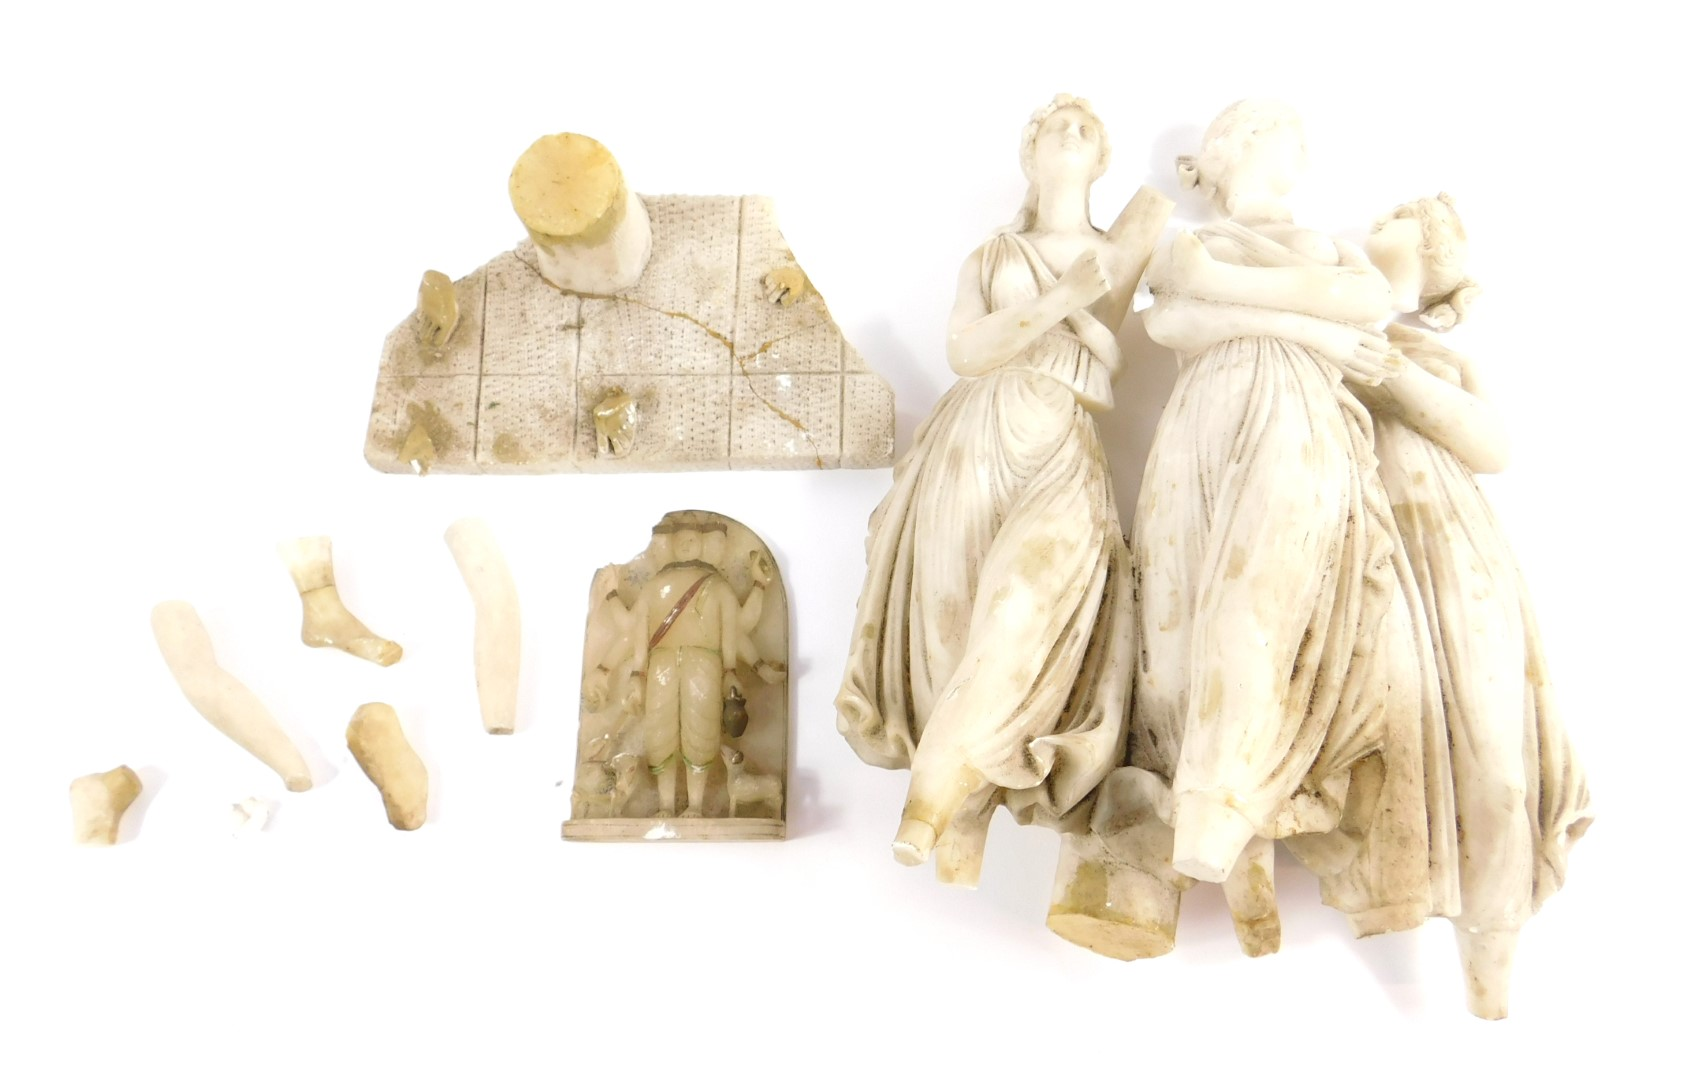 A Continental alabaster figure group modelled as The Three Graces, and an Asian alabaster deity